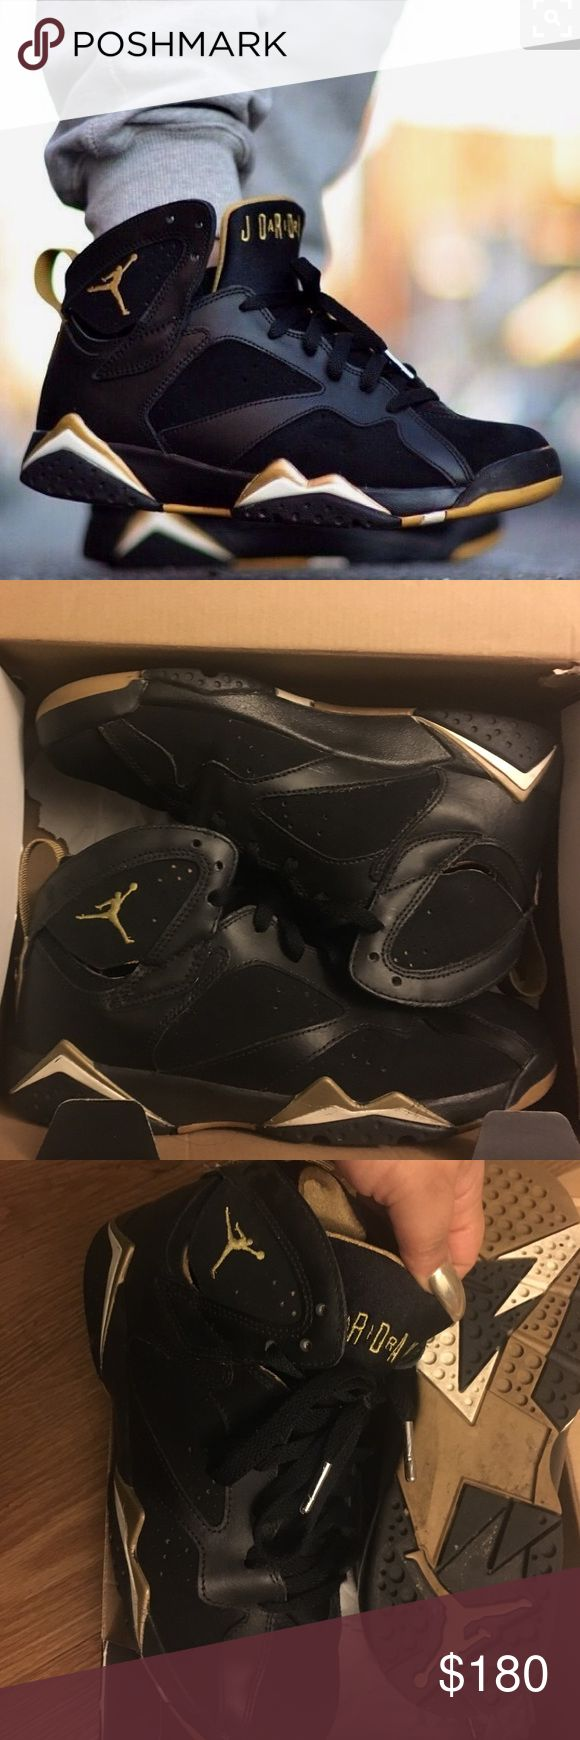 AIR JORDAN 7 GMP GOLD MEAL PACK 7Y 7 Y youth BLACK AIR JORDAN GMP GOLD MEAL PACK 7Y 7 Y youth BLACK pre loved but still very wearable condition. 100% AUTHENTIC . Soles replaced with a gel cushion when I purchased for hygiene reasons  which are included.  Make an OFFER with the offer button. Size 7 youth which is a women's 8. These are a VERY RARE SIZE AND COLLECTORS EDITION! Jordan Shoes Athletic Shoes